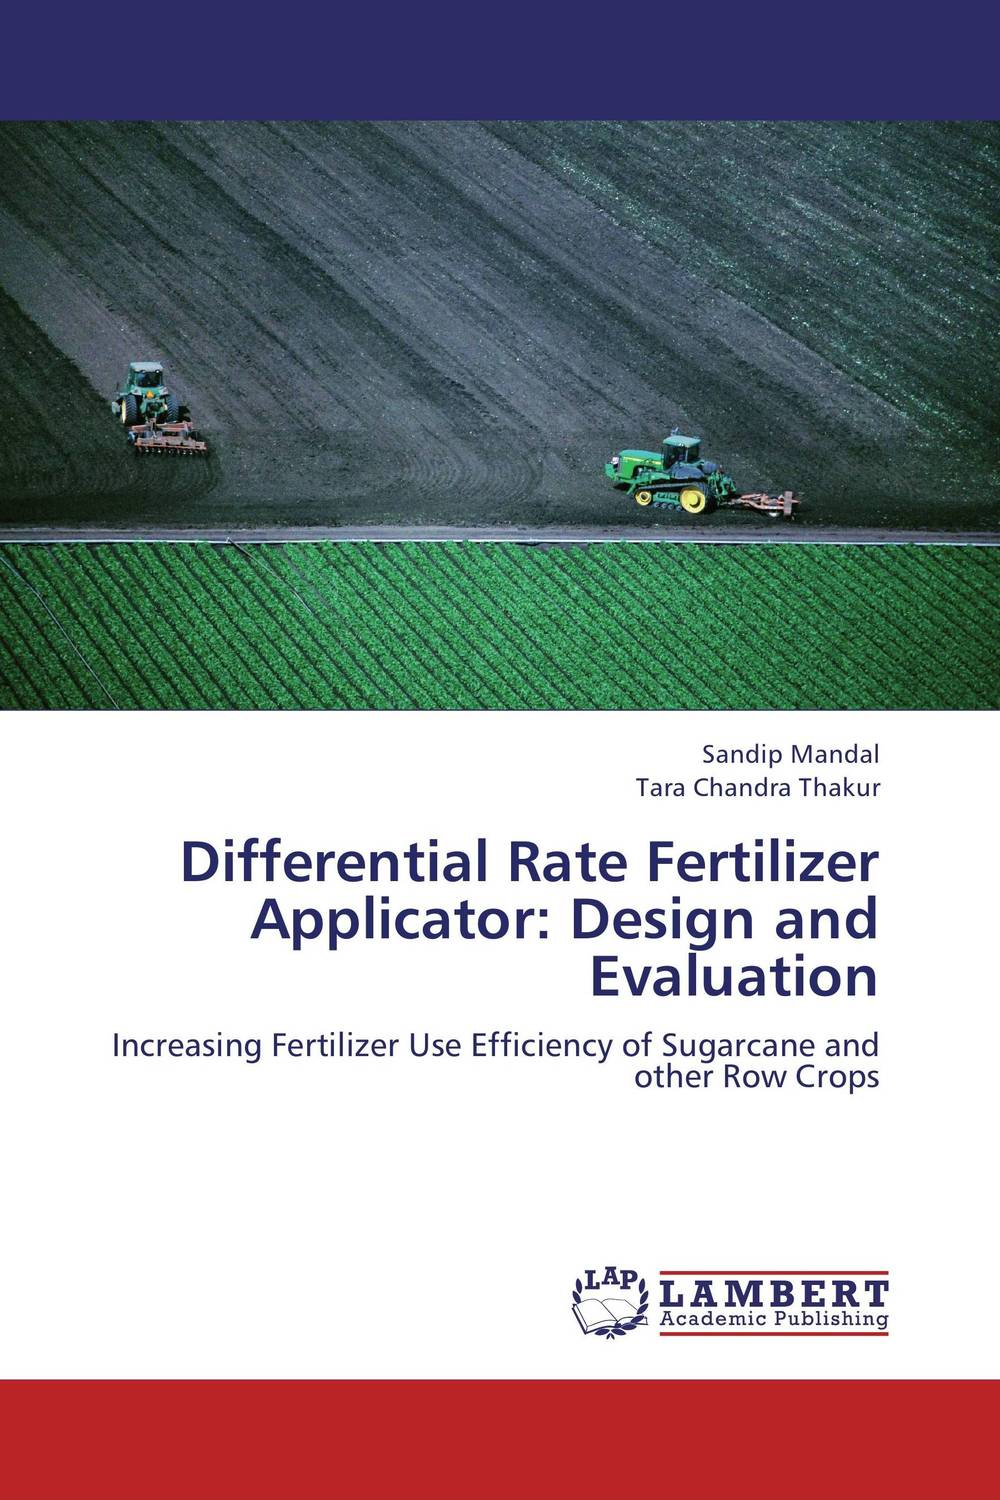 Differential Rate Fertilizer Applicator: Design and Evaluation evaluation of various methods of fertilizer application in potato